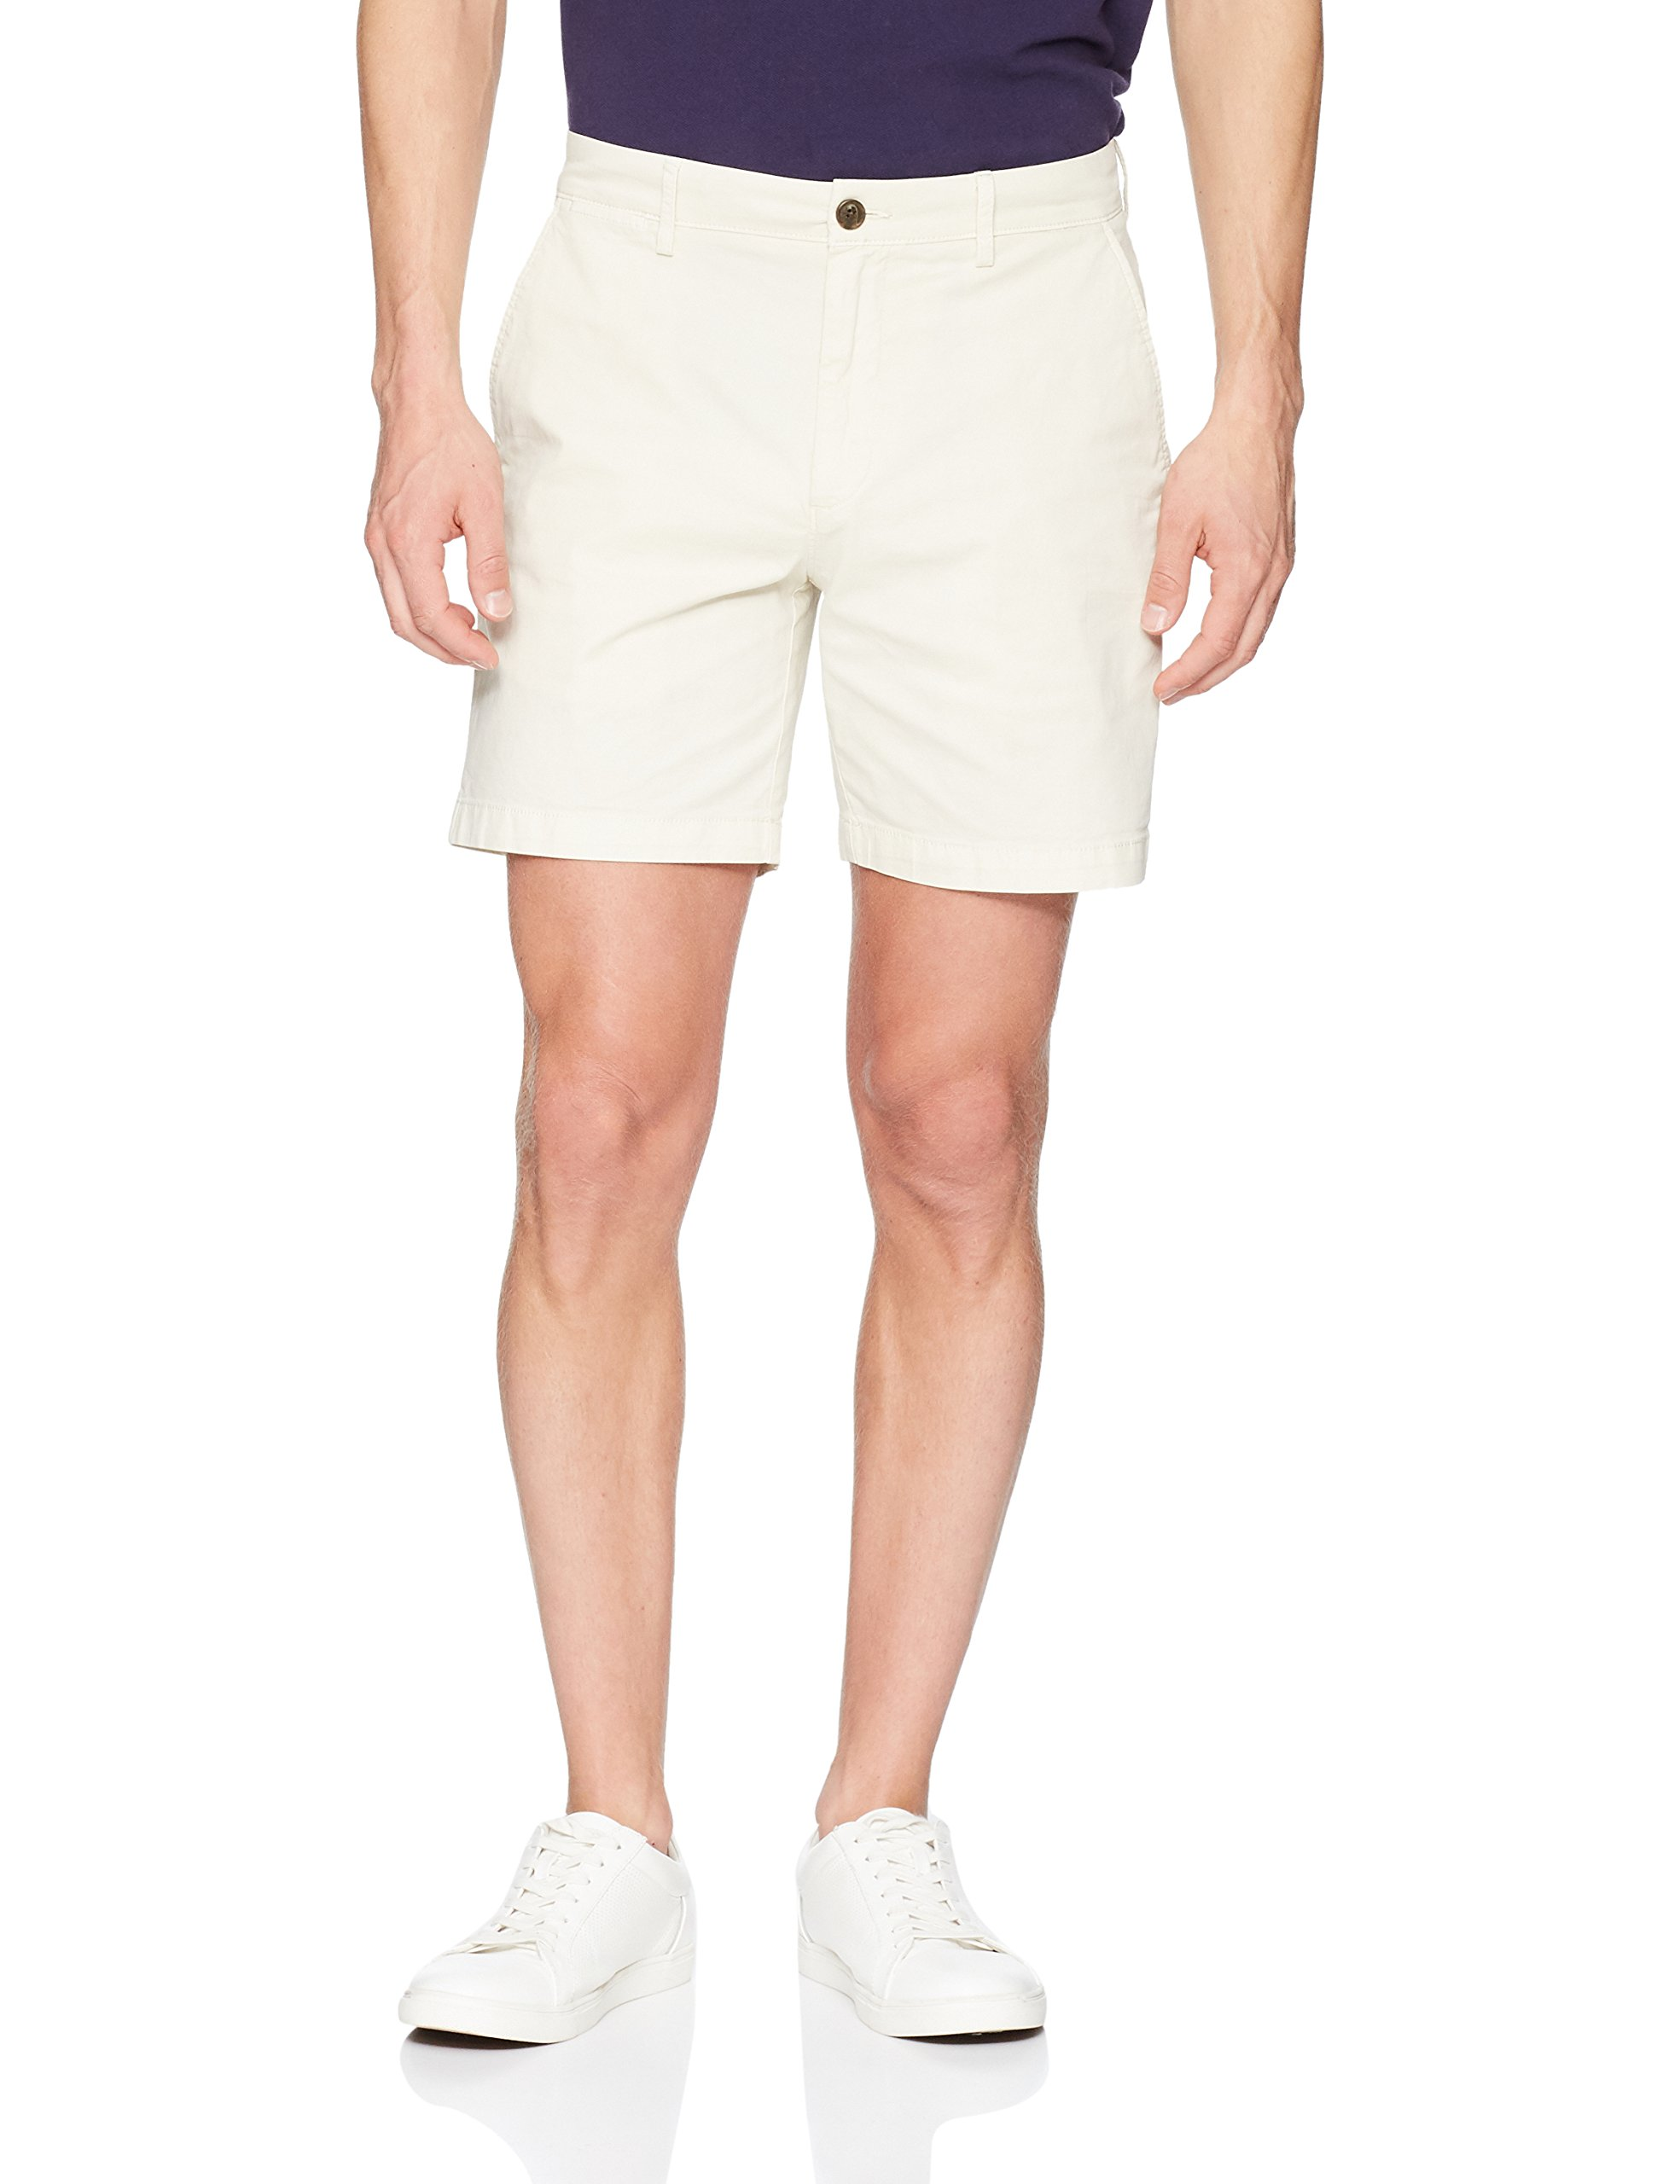 Goodthreads Men's 7'' Inseam Flat-Front Stretch Chino Short, Moonbeam, 32